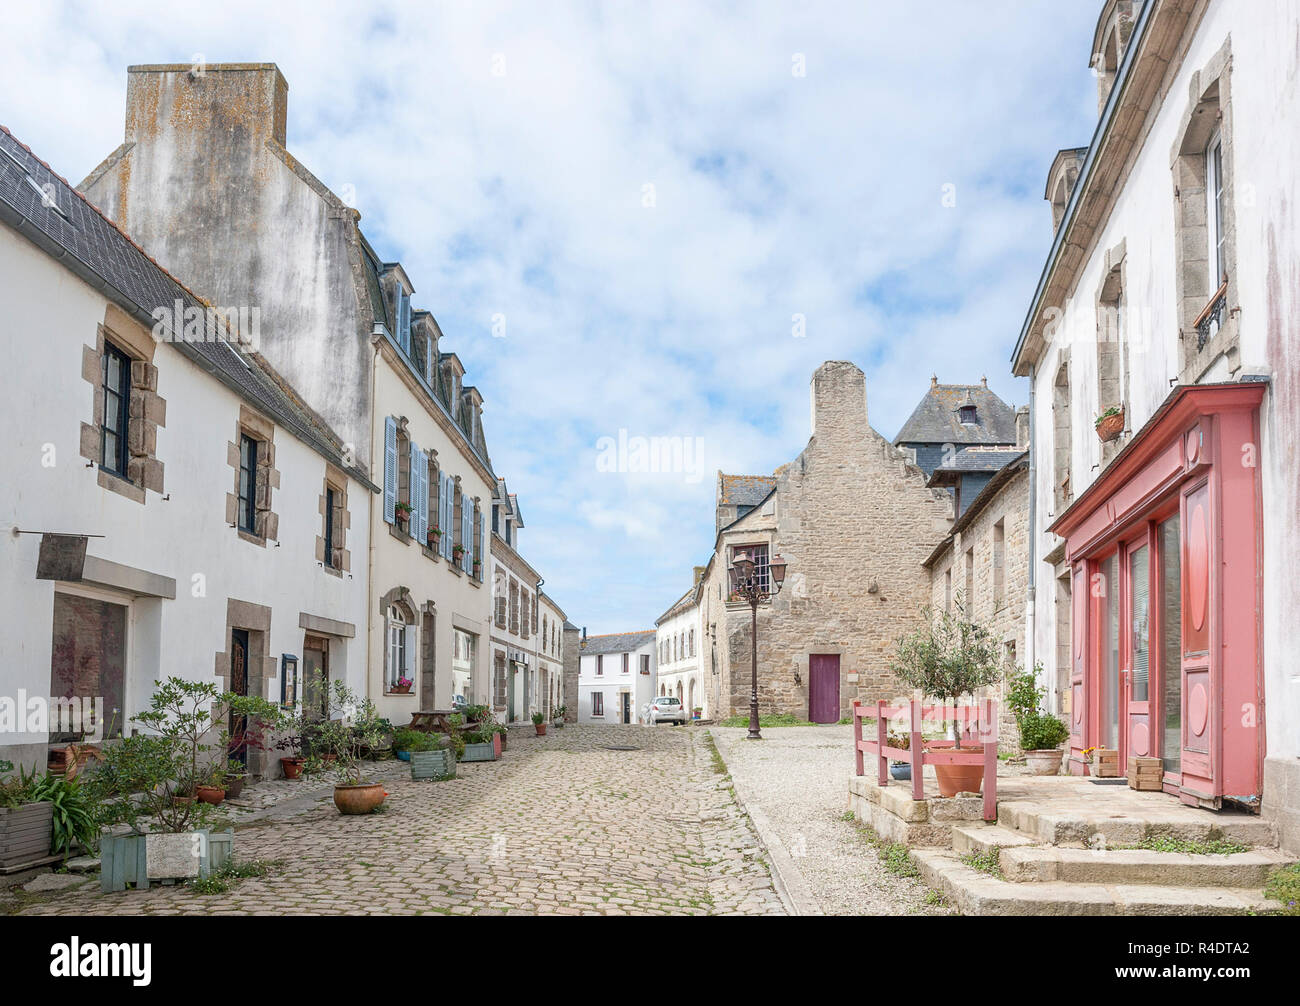 pont-croix in brittany - Stock Image